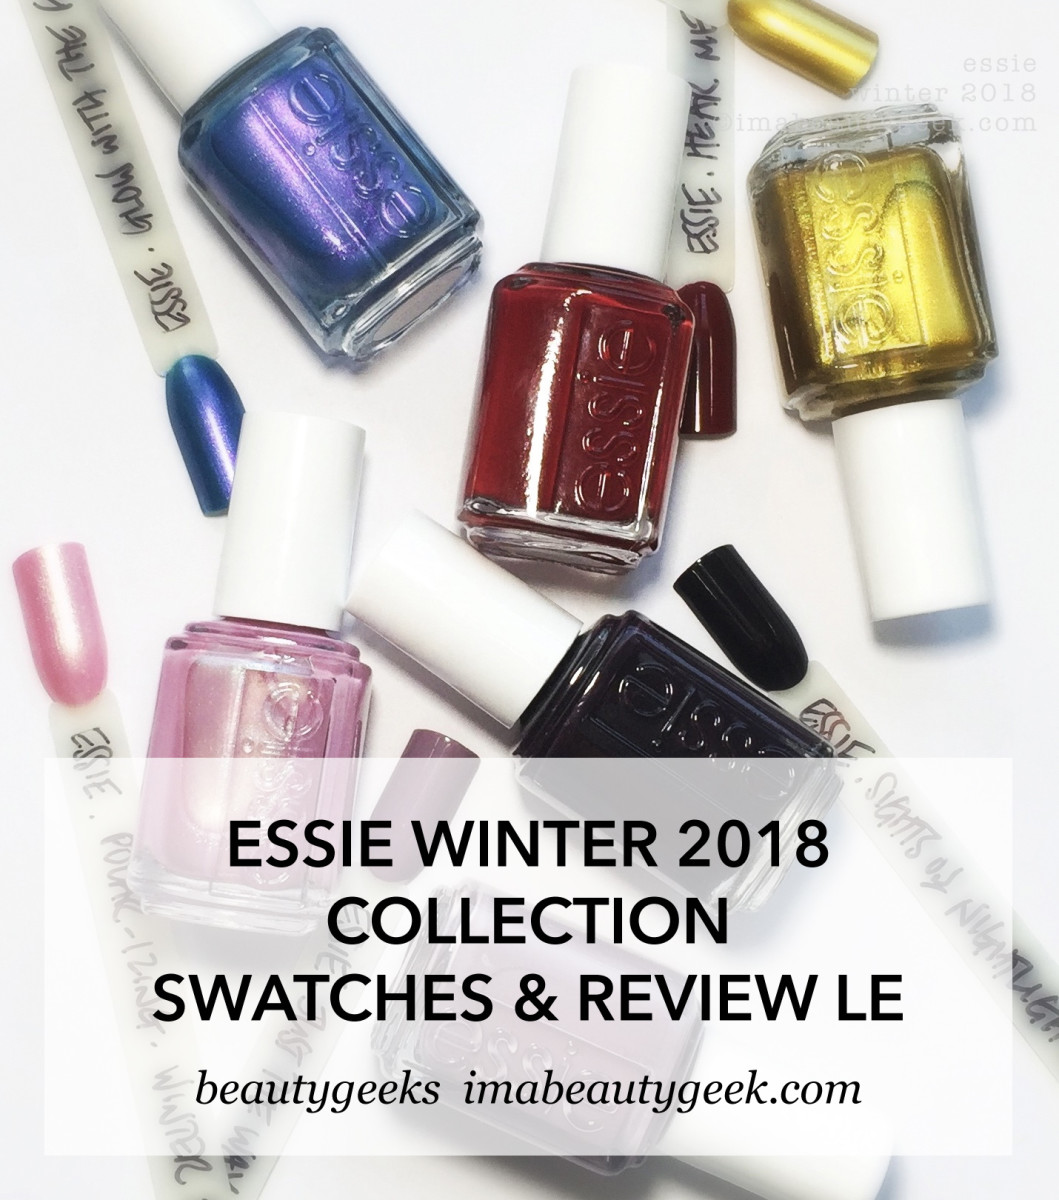 Essie Winter 2018 Collection Swatches Review LE image